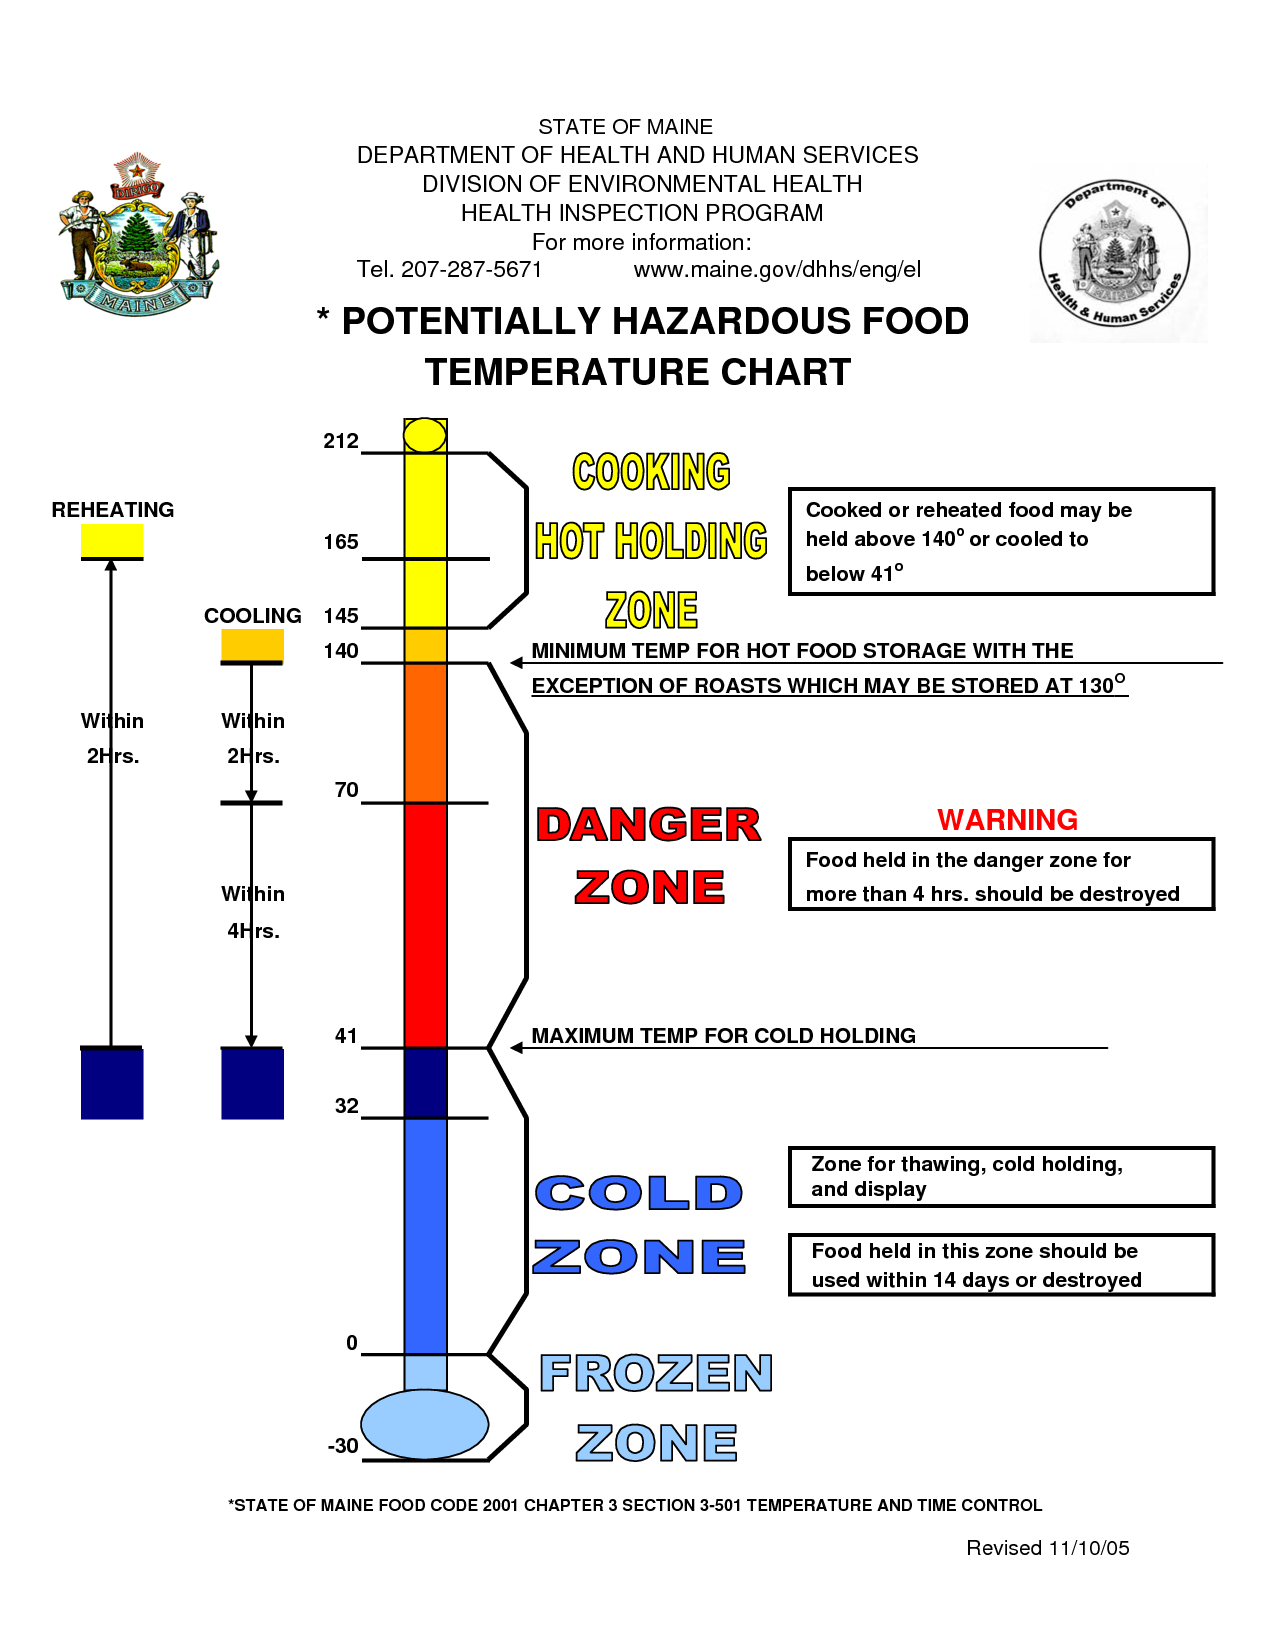 medium resolution of temperature chart template potentially hazardous food temperature humidity diagram food temperature diagram